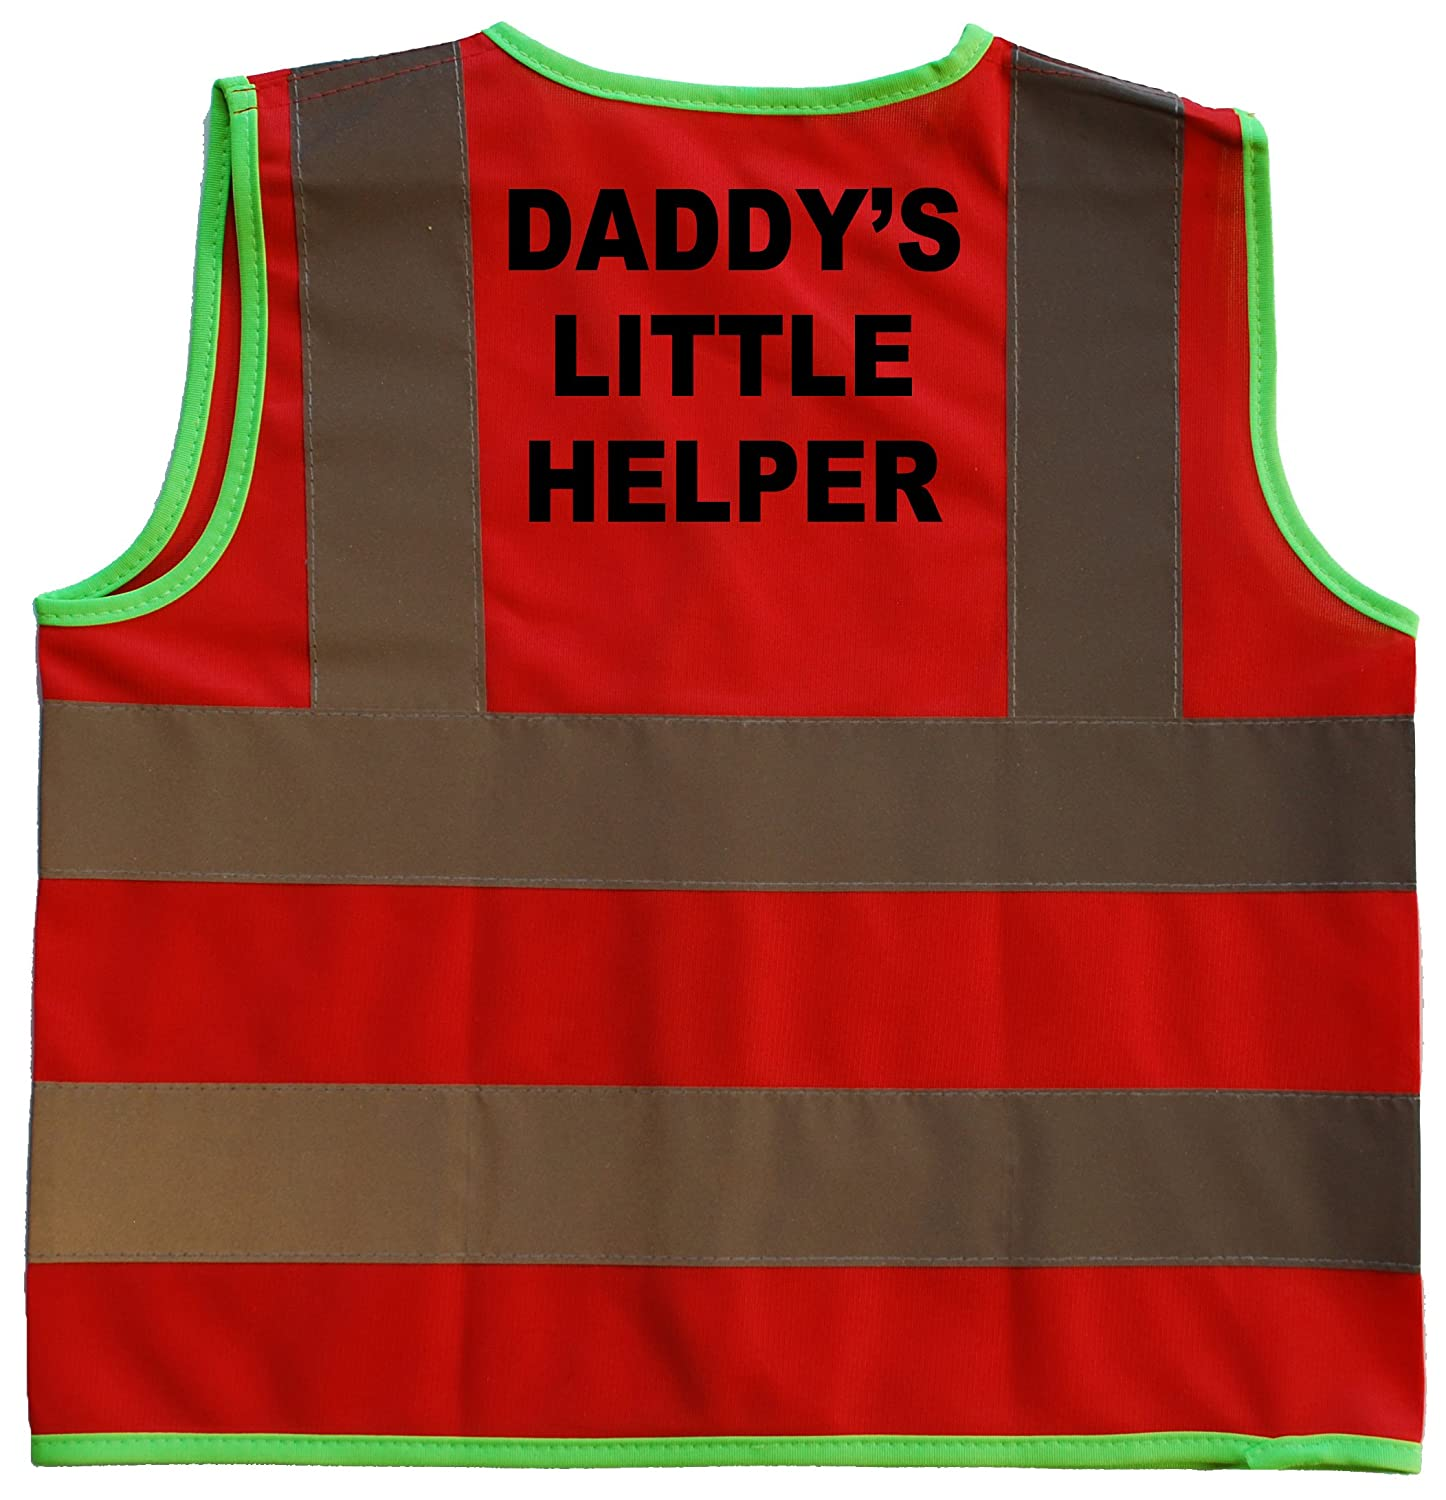 Daddy's Little Helper Baby/Children/Kids Hi Vis Safety Jacket/Vest Sizes 0 to 8 Years Optional Personalised On Front